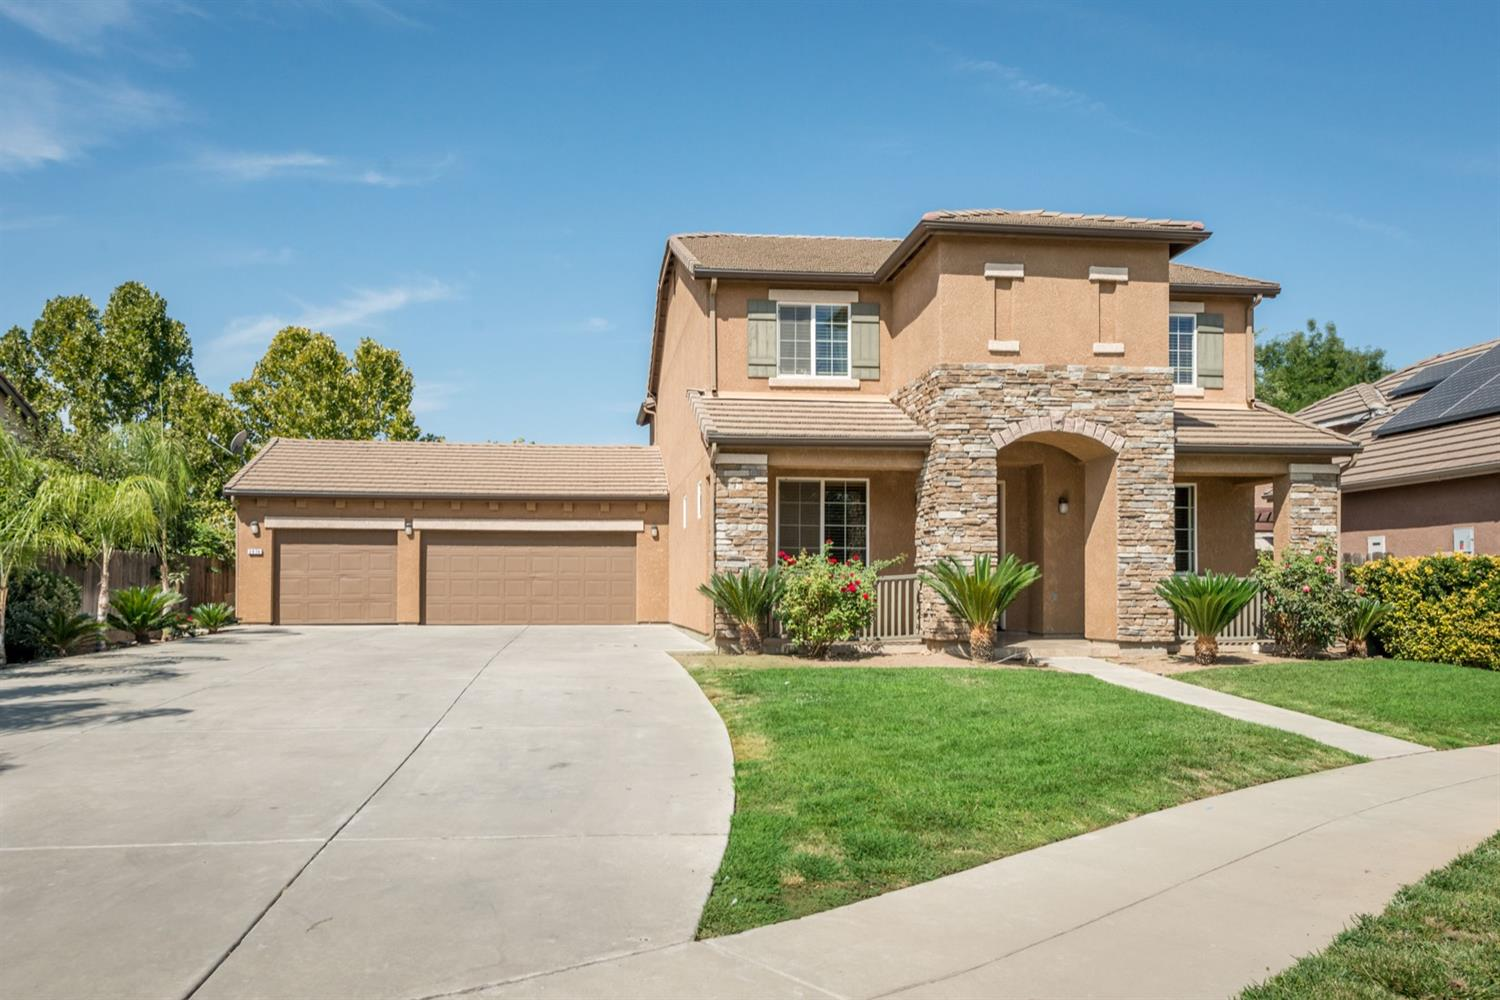 Photo of 2874 Whitmore Avenue, Clovis, CA 93619